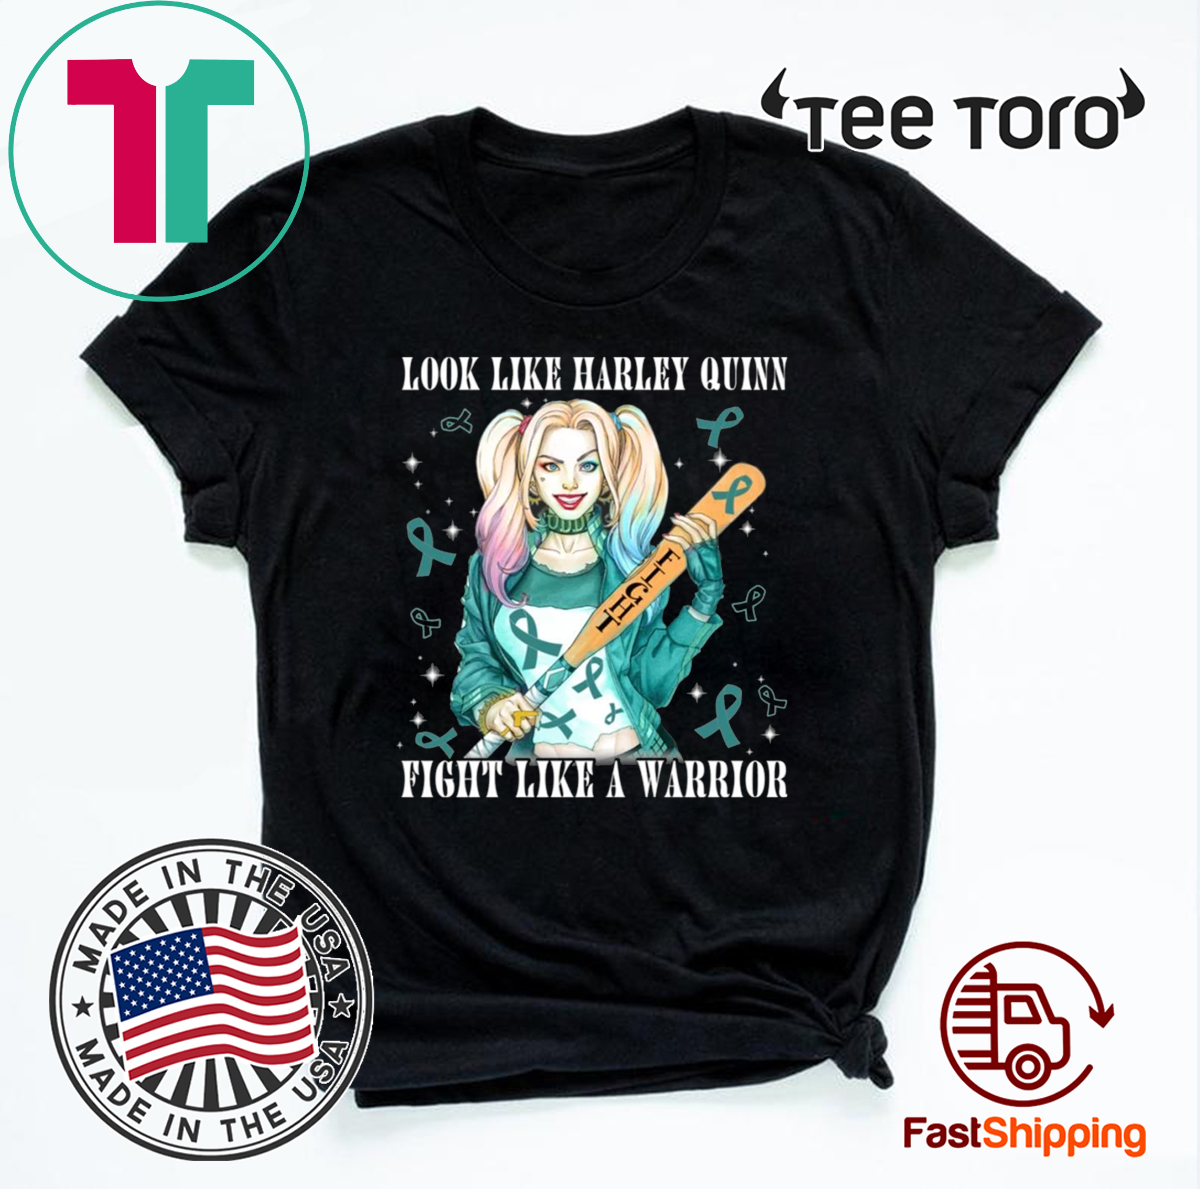 Look Like Harley Quinn Fight Like A Warrior Ovarian Cancer Awareness For T-Shirt